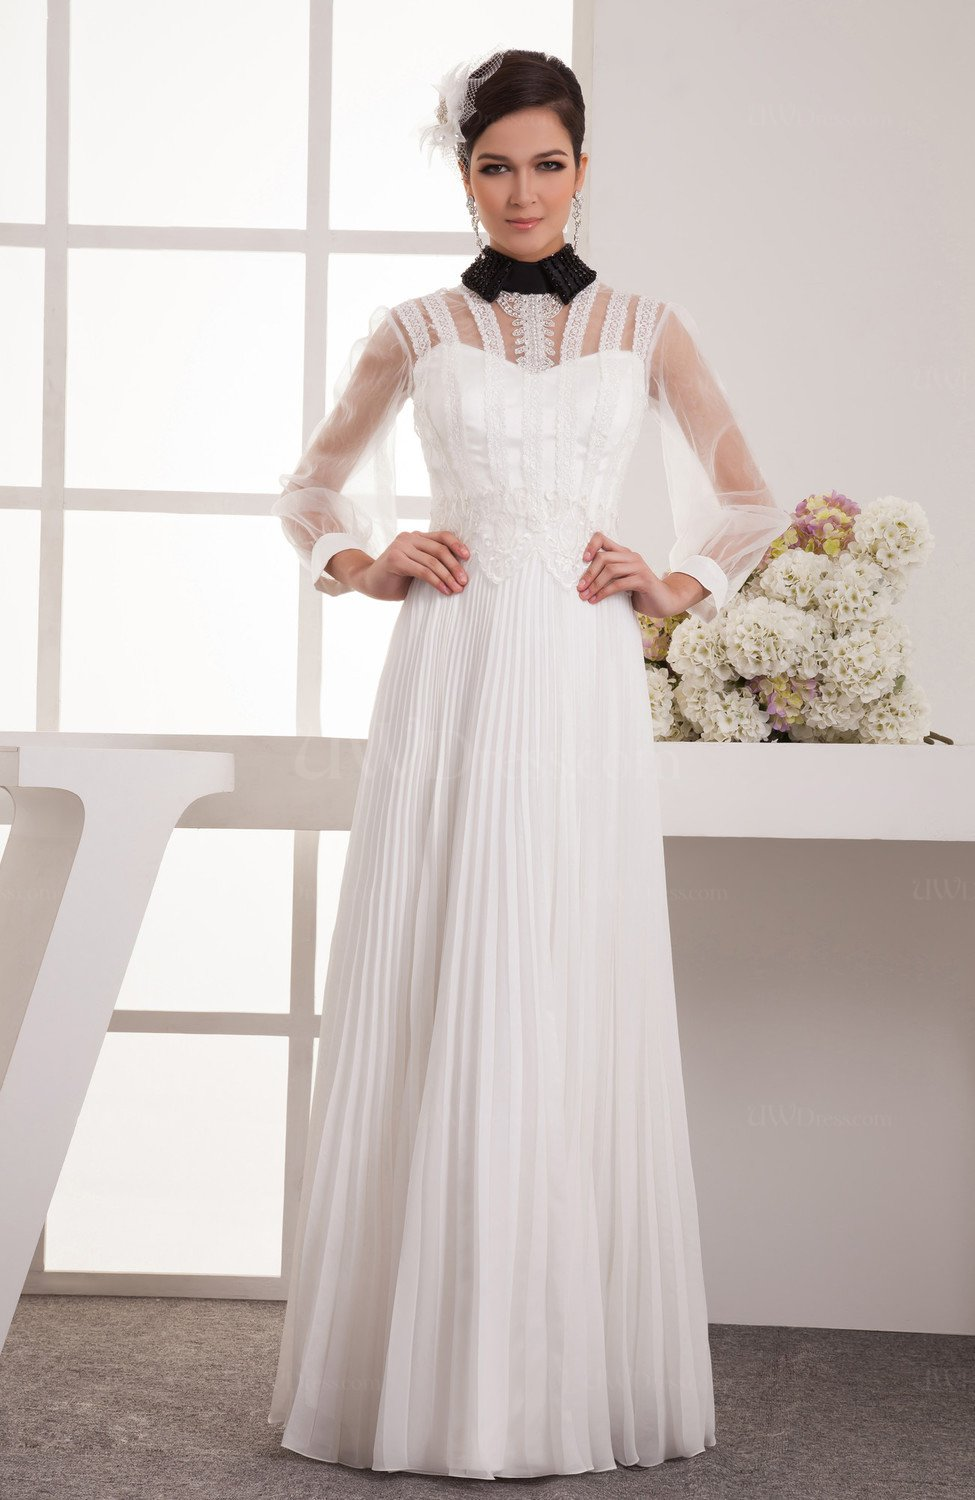 With sleeves prom dress lace long sleeve traditional for Long sleeve wedding dress topper